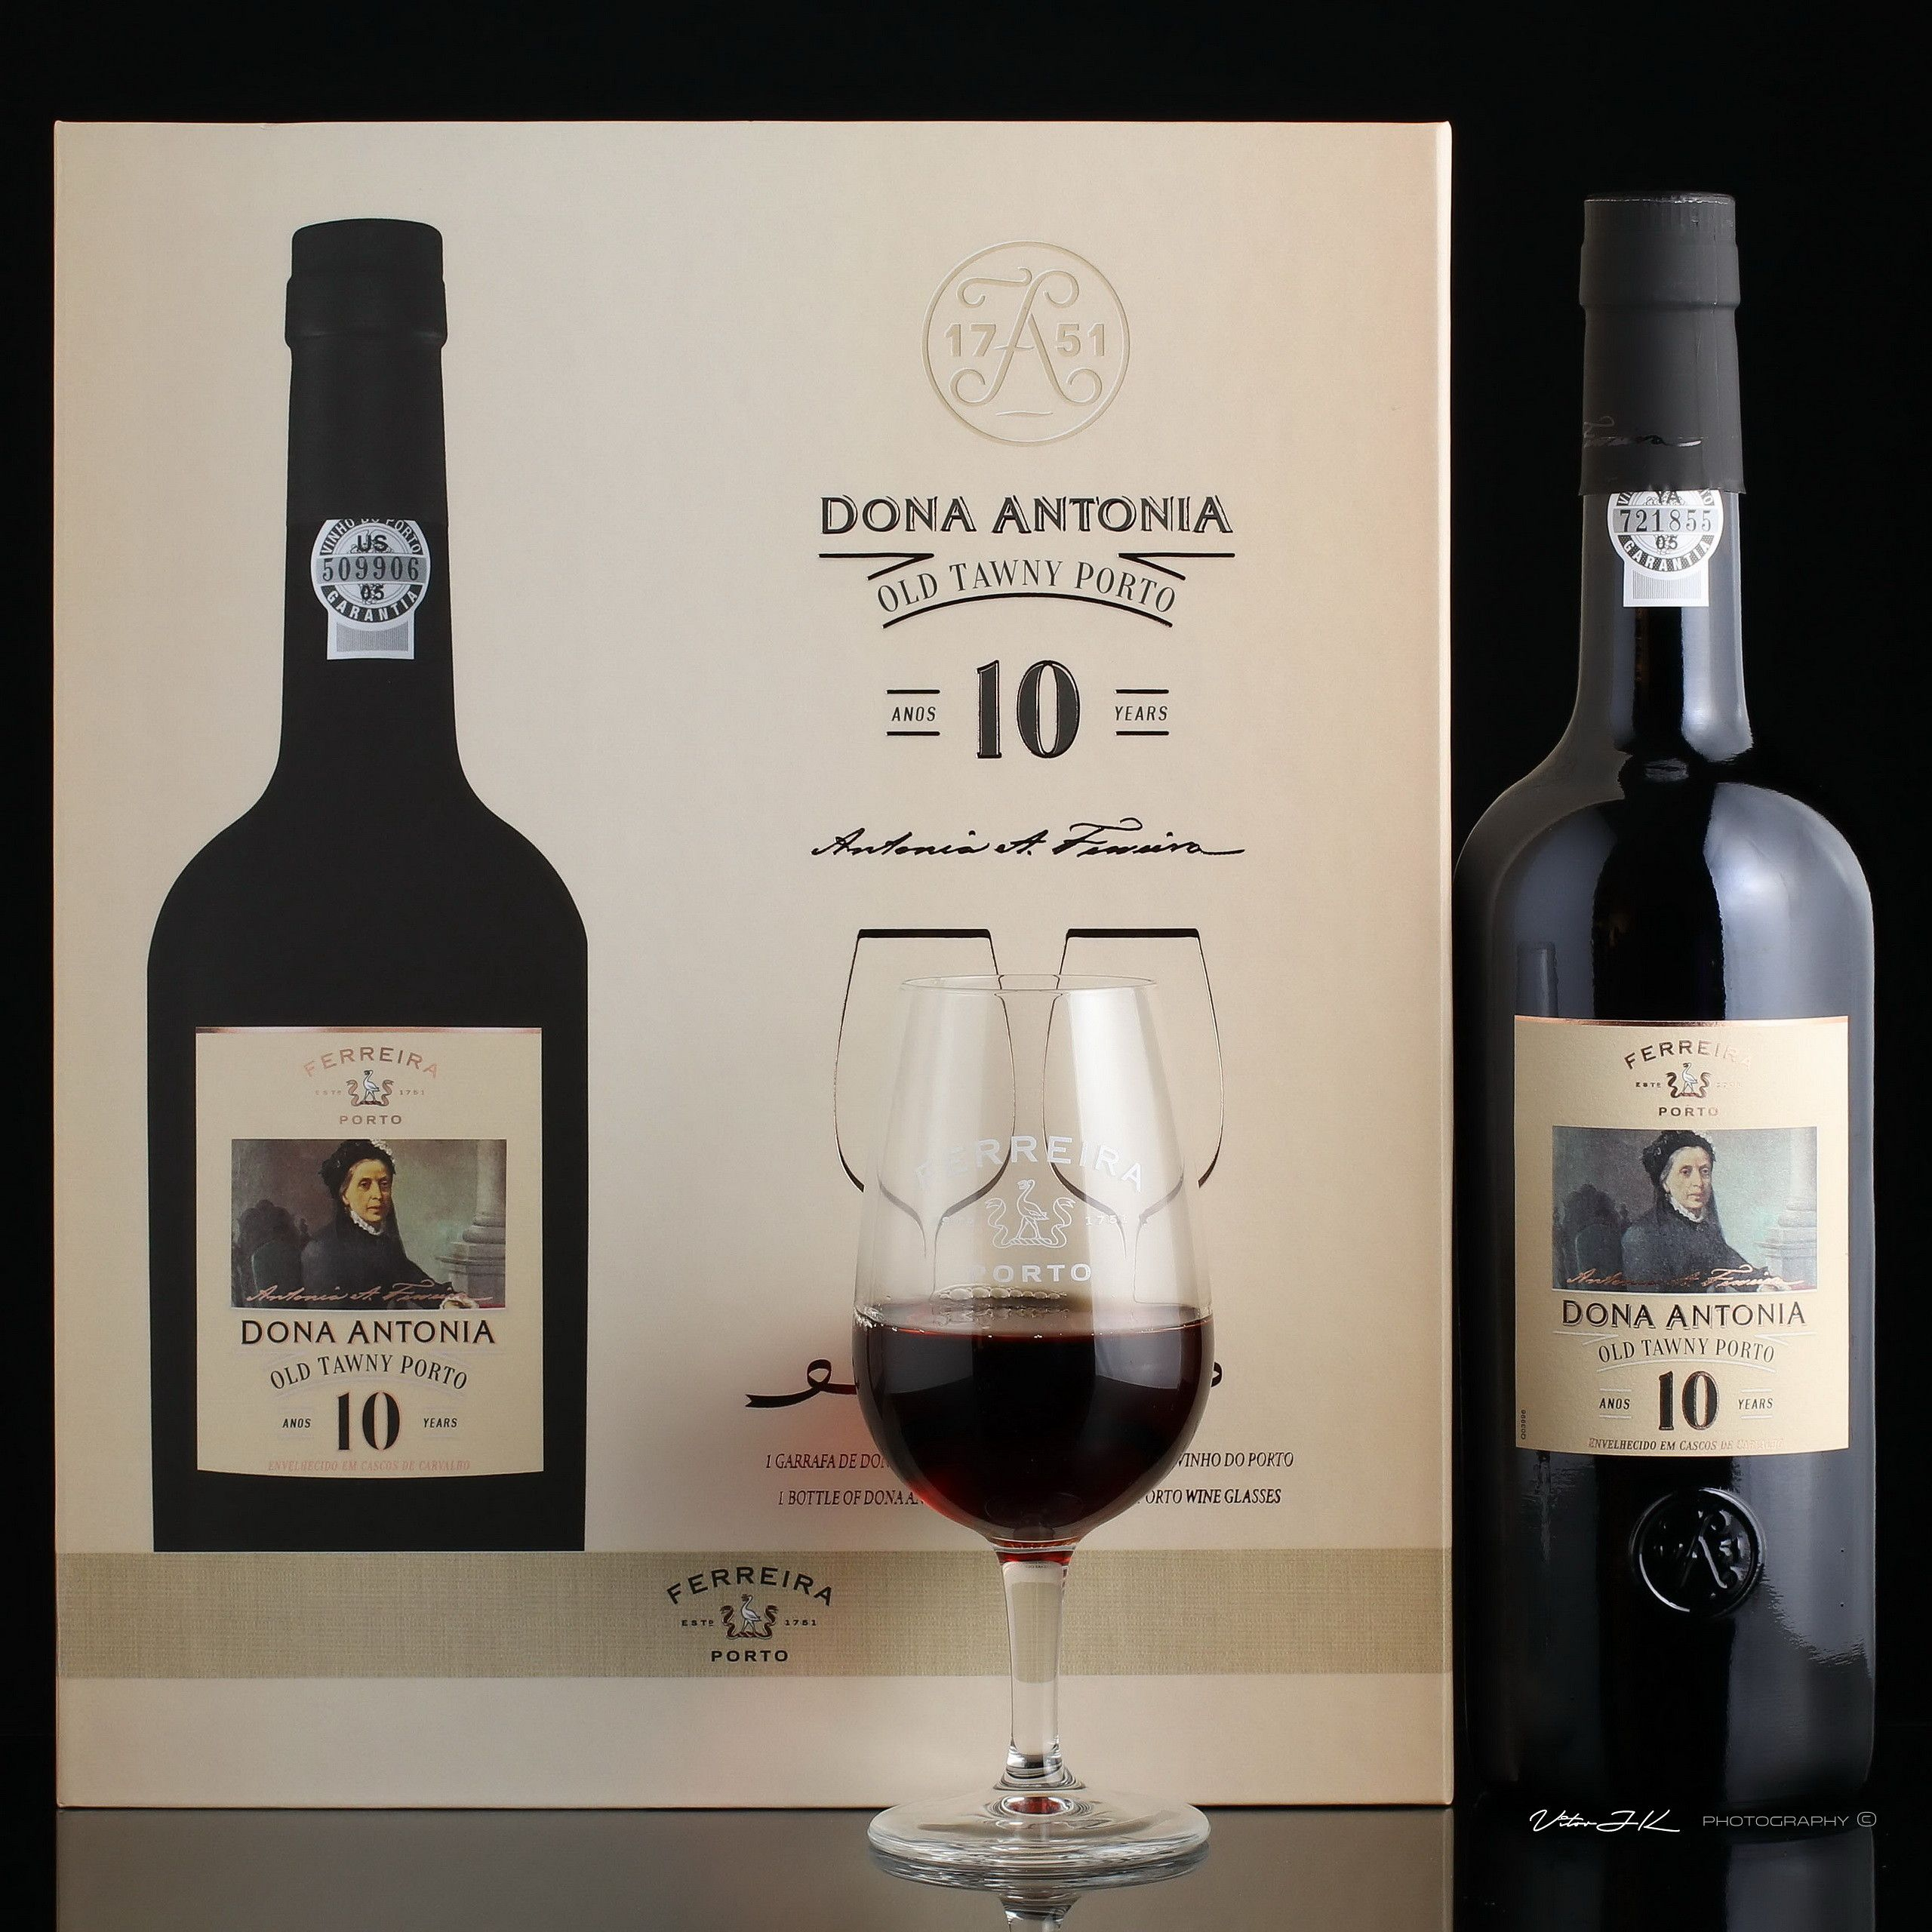 Dona Antonia Old Tawny Porto 10 Years Port Wine In 2020 Port Wine Wine Porto